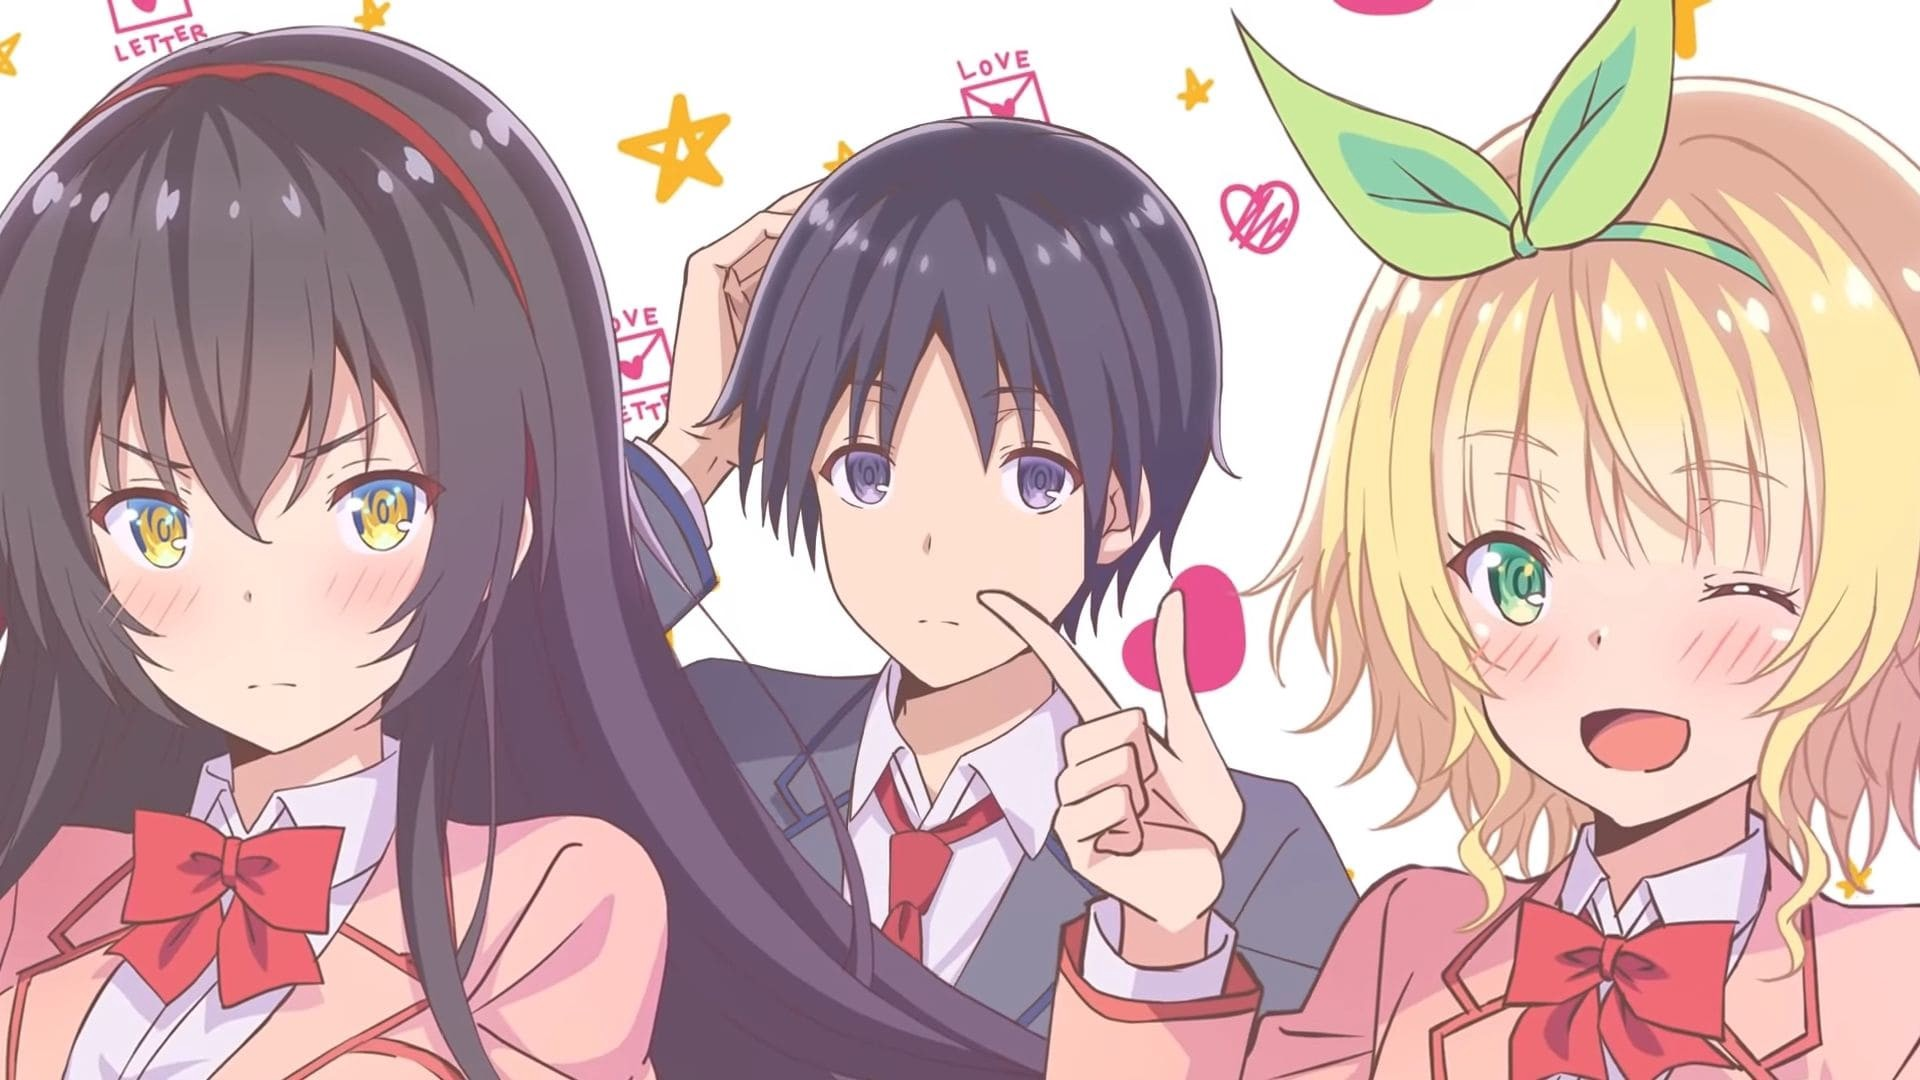 AnimeReview: Hensuki - Are you willig to fall in love with a pervert, as long as she is a cutie?